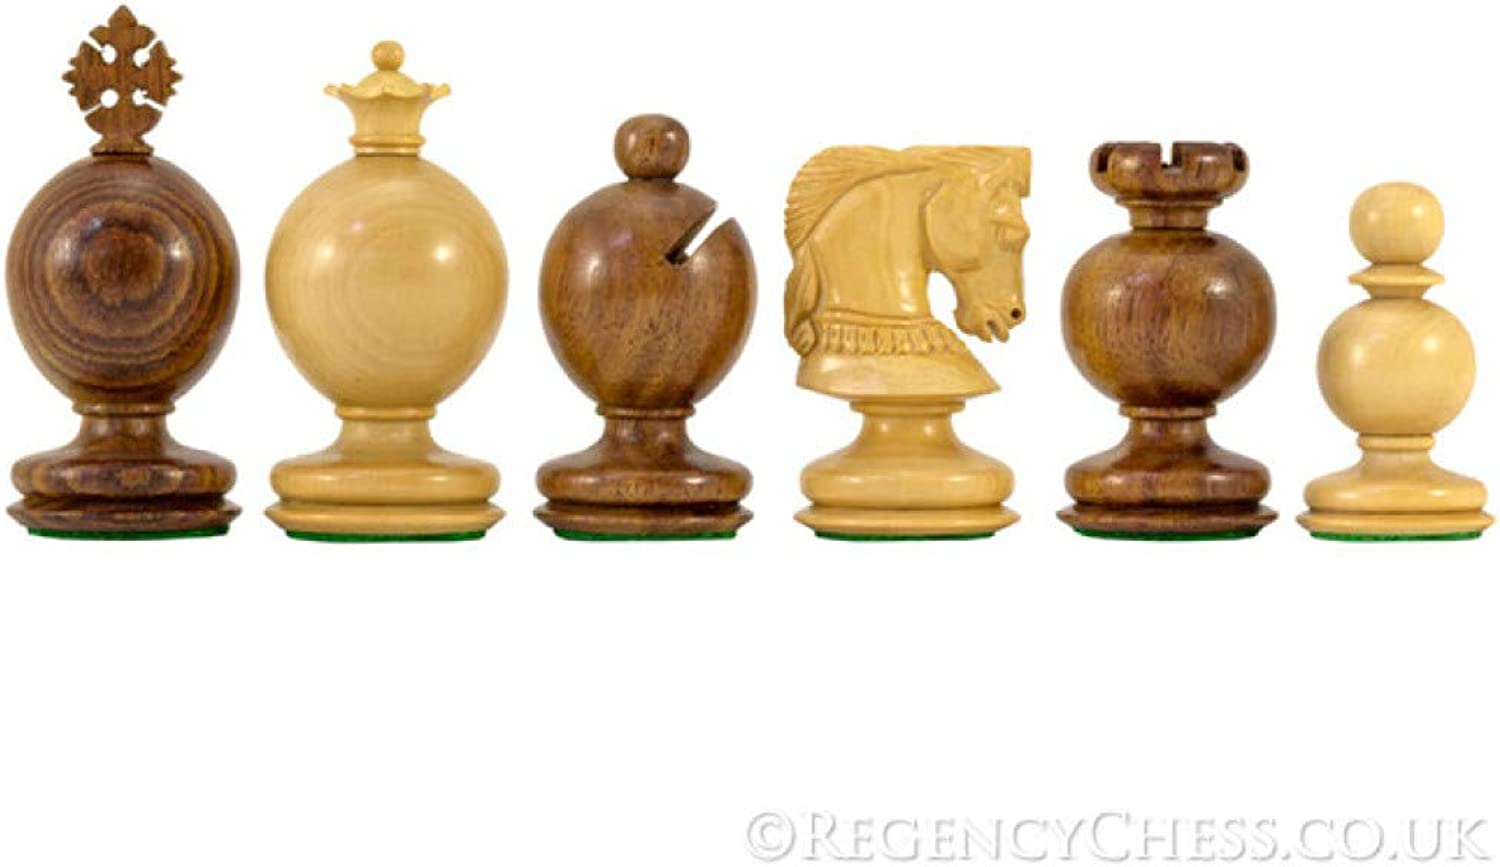 Regency Chess Easter Series golden pinkwood Carved Chessmen